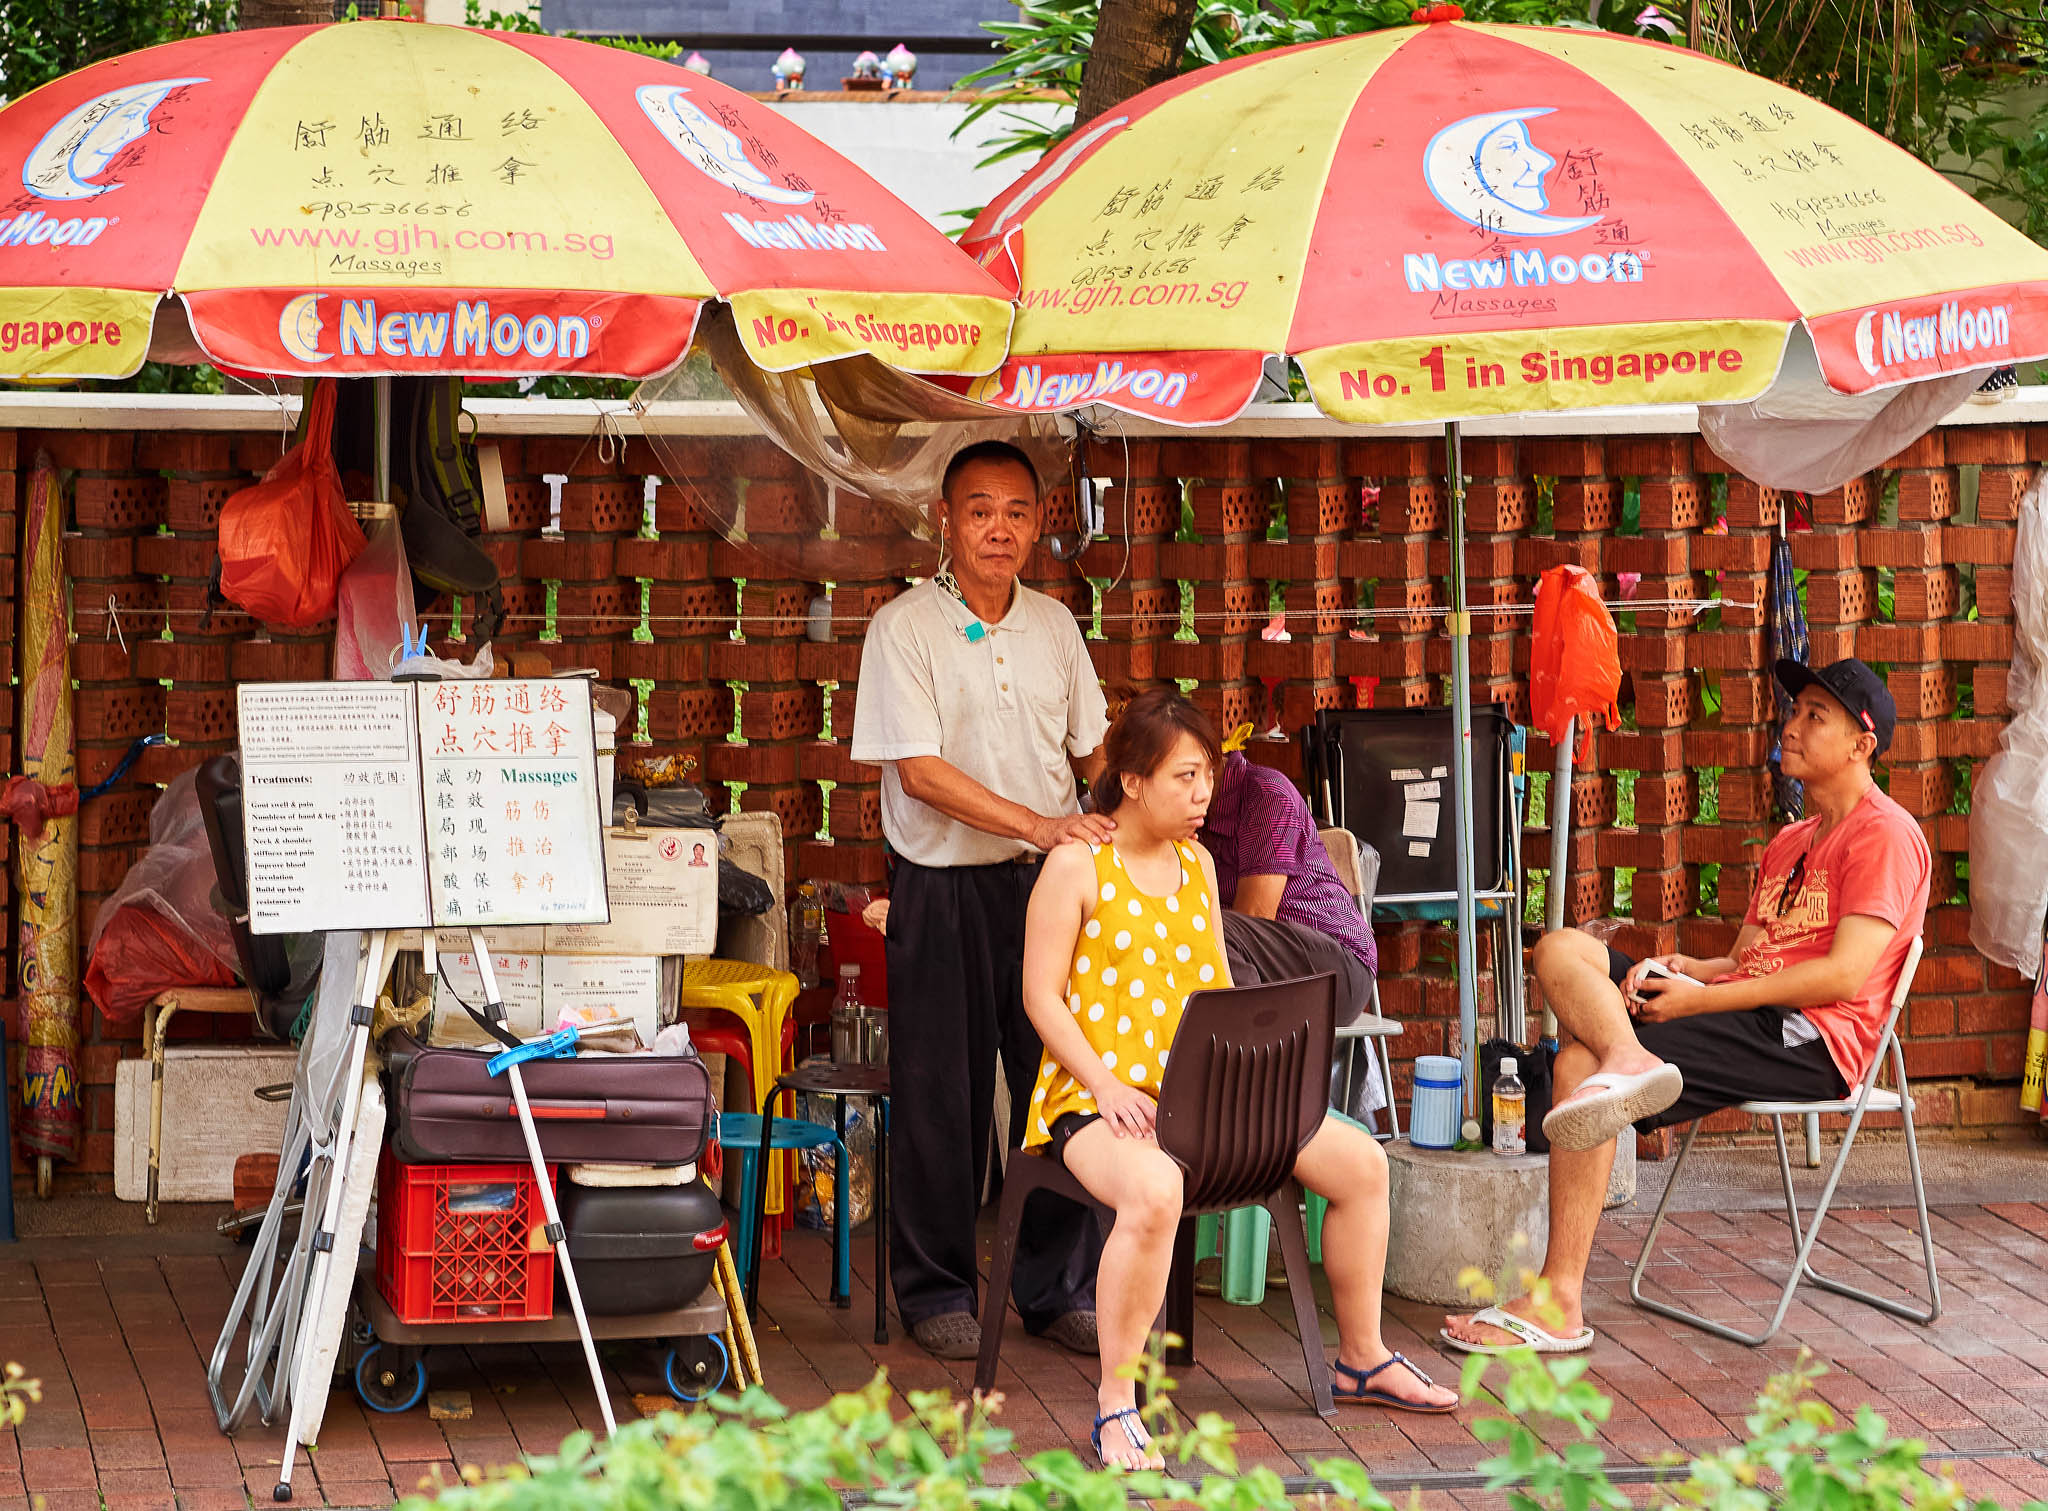 A massage therapist at work in his street-side workplace, Bugis, Singapore